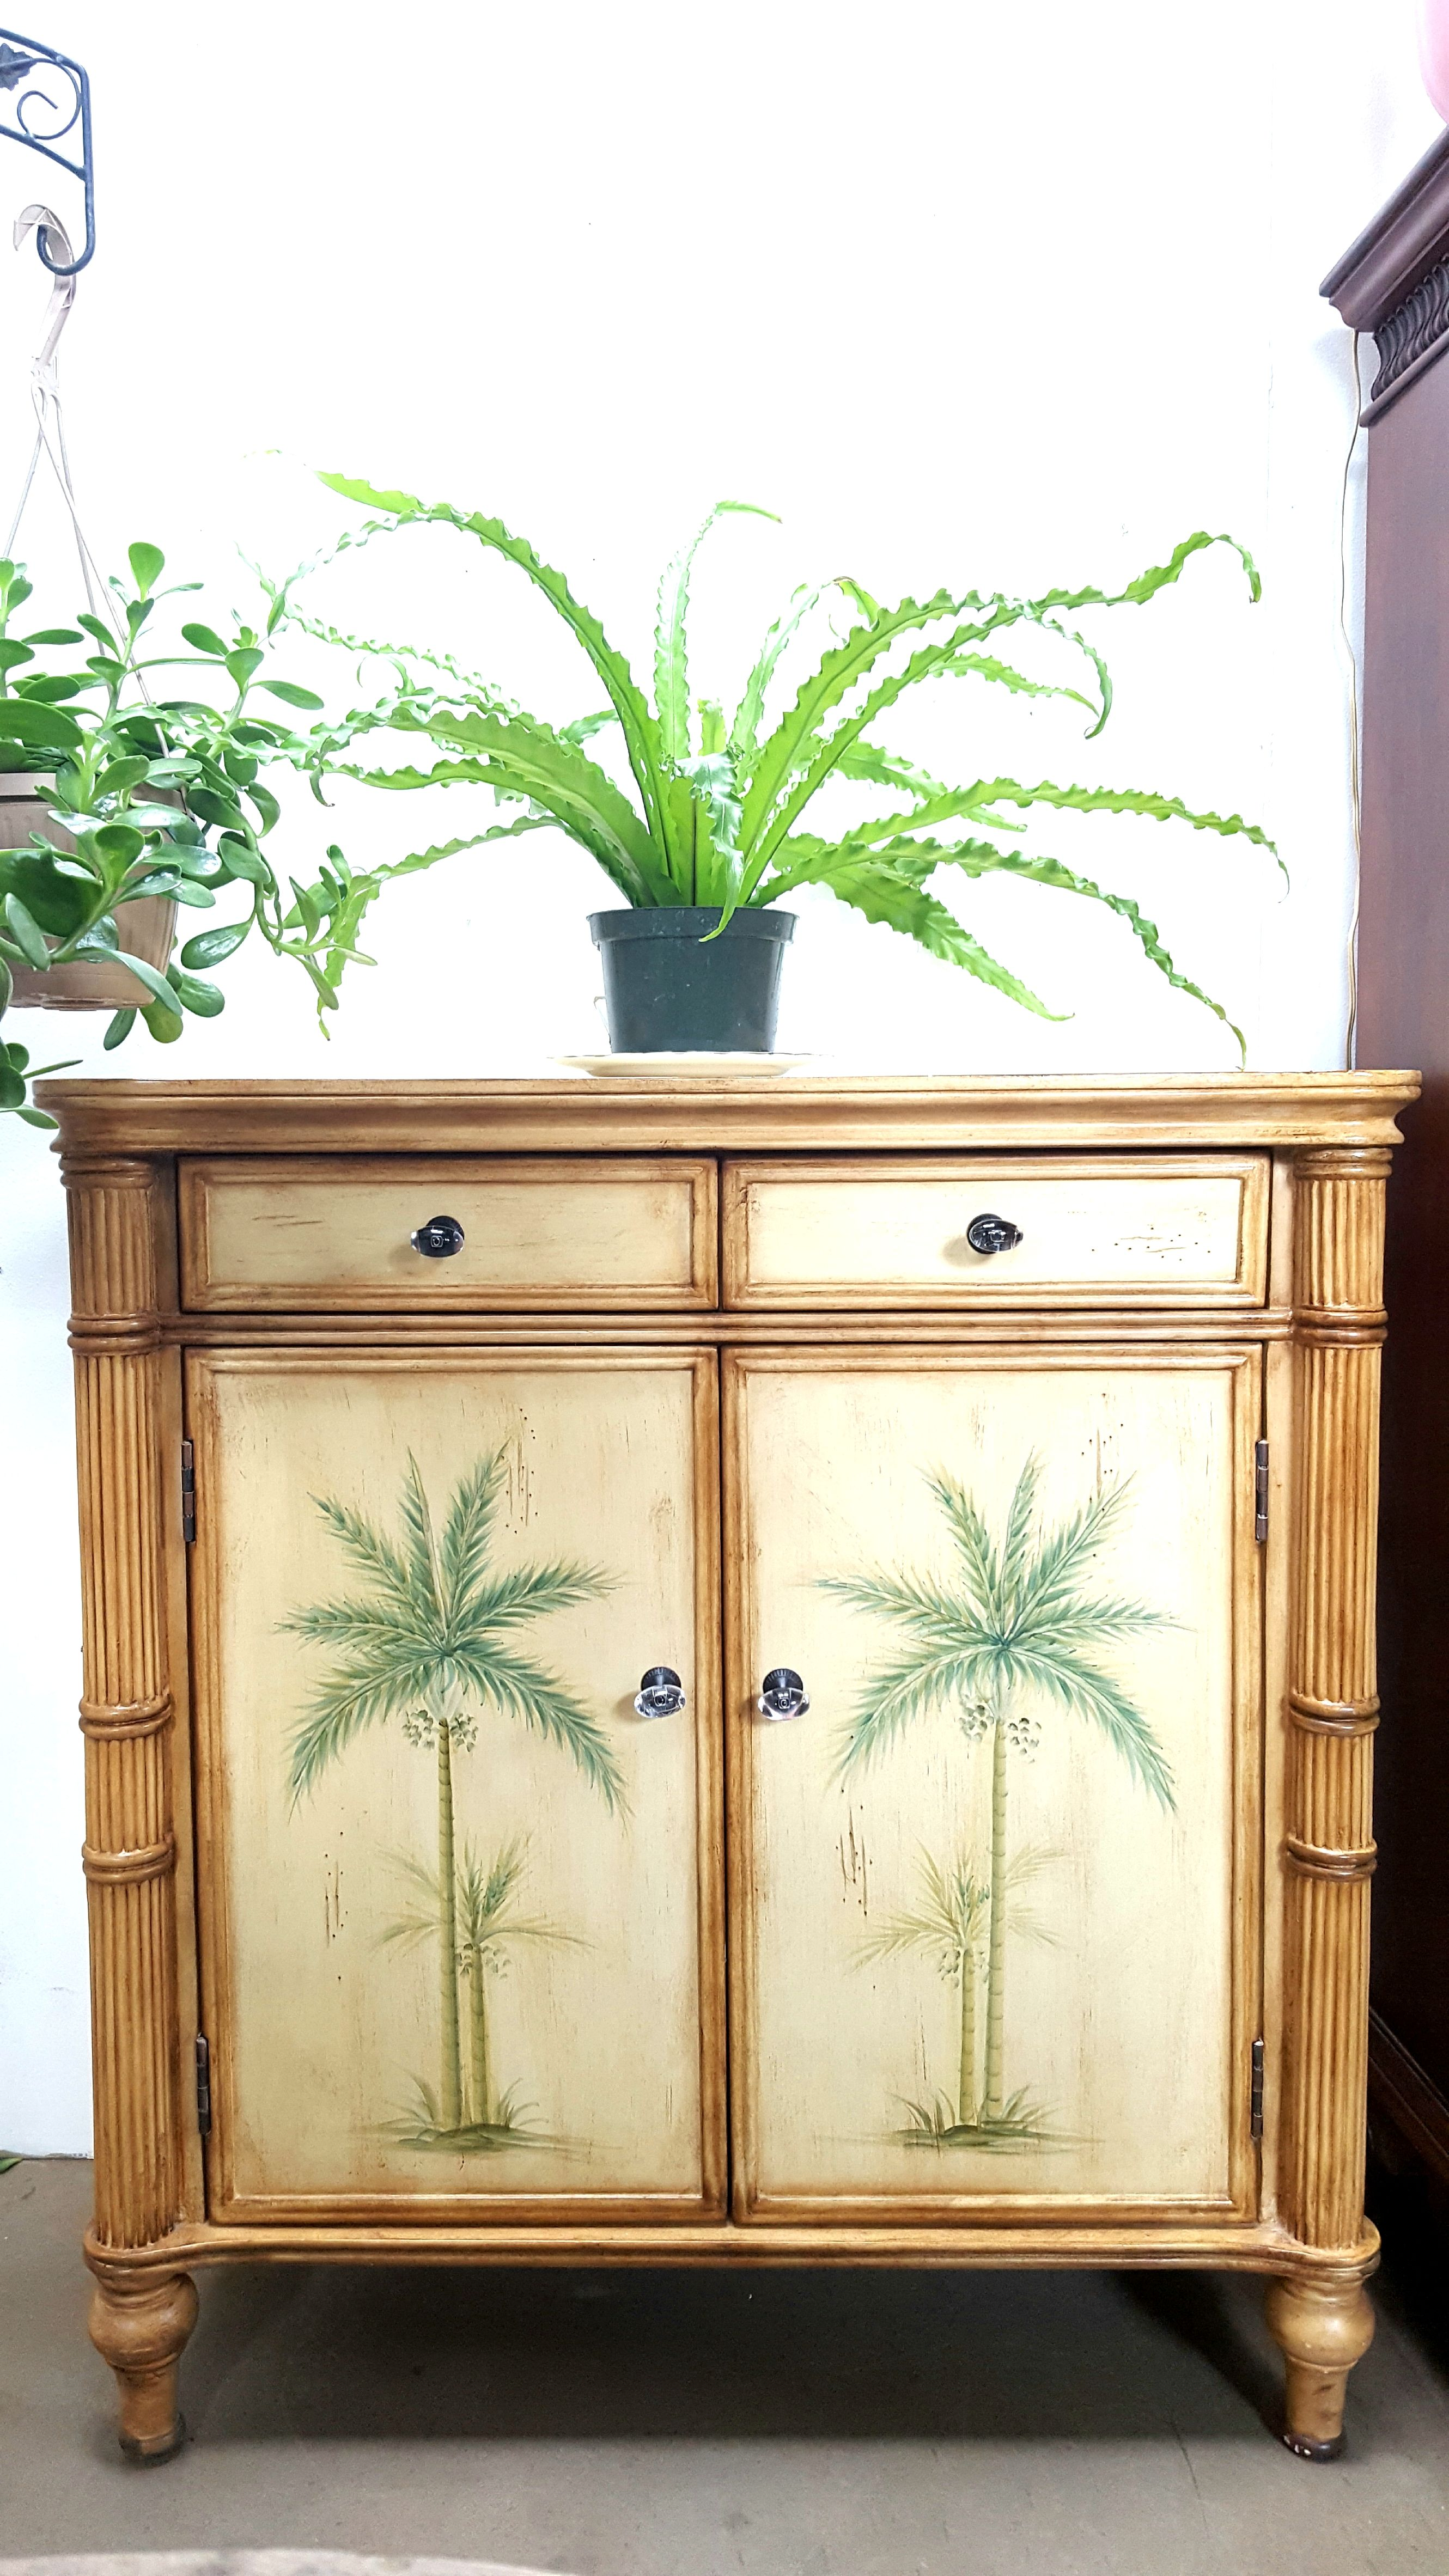 Ay Style Cabinet Featuring Bamboo Reminiscent Edges And Palm Trees Painted On The Doors Comes With Two Drawers Shelves Inside